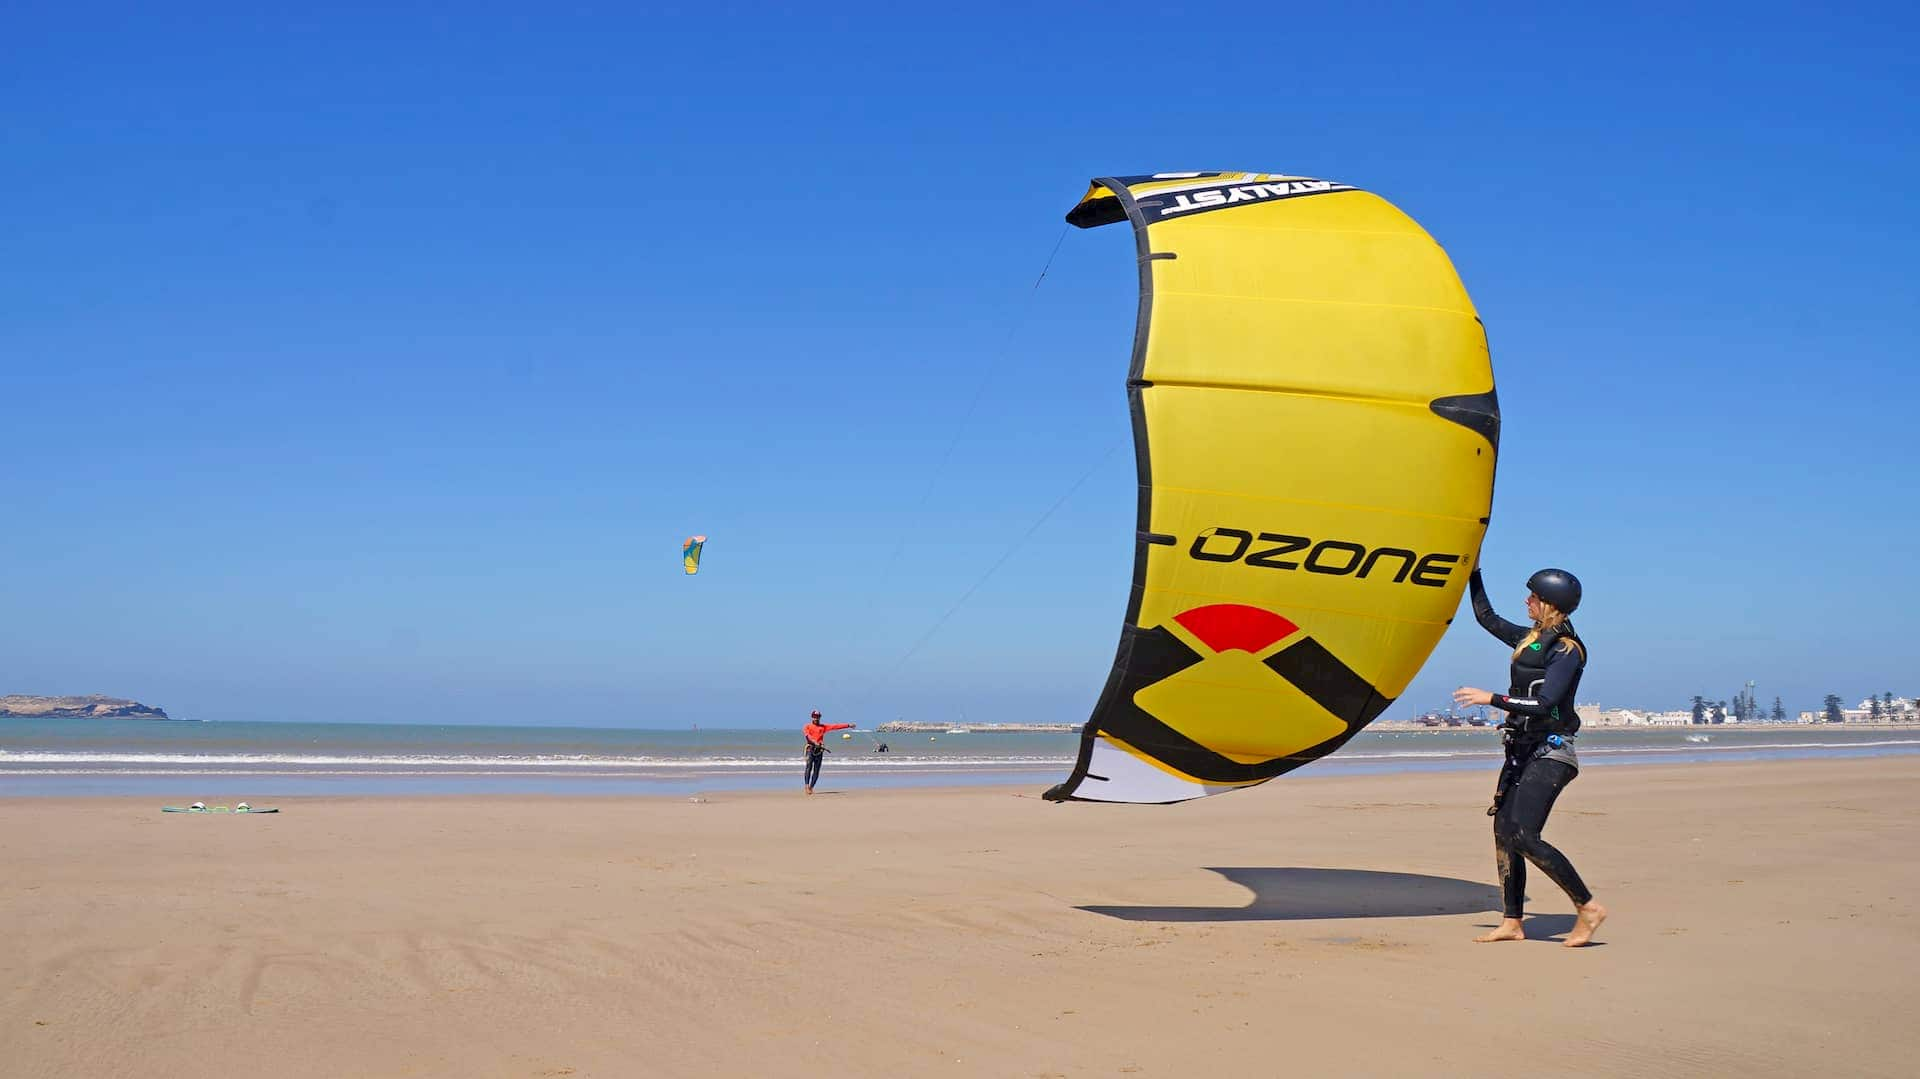 Initiation Kitesurf Essaouira